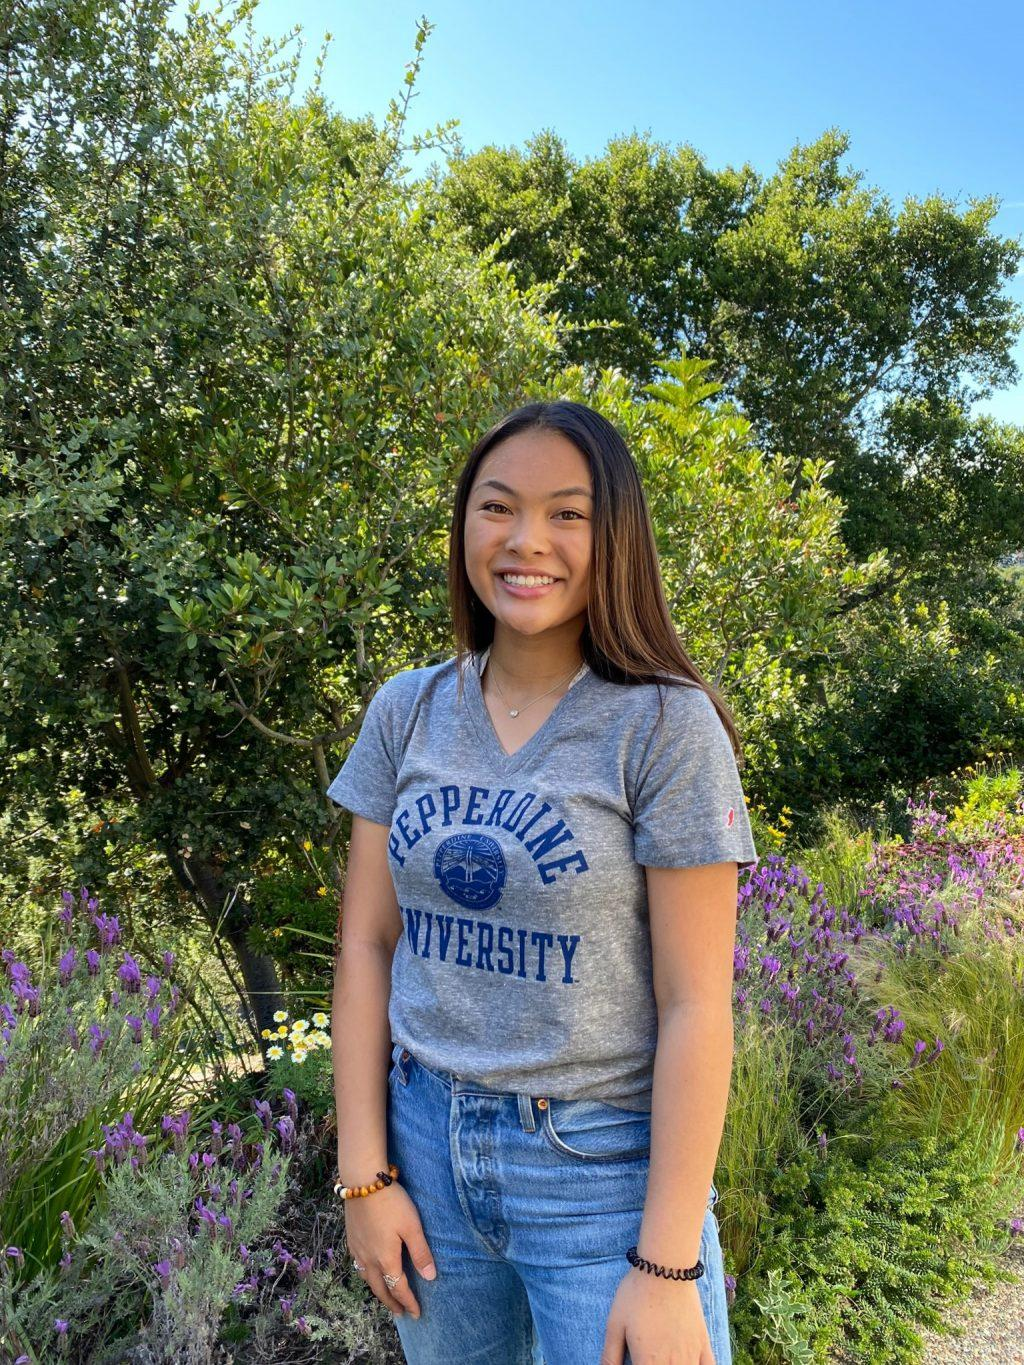 Abaya dons a Pepperdine T-shirt shortly after making a decision to become a Wave in May in her hometown of Redwood City, CA. She said she is excited to gain knowledge, build community and have valuable experiences to reflect on later in life after going to Pepperdine.